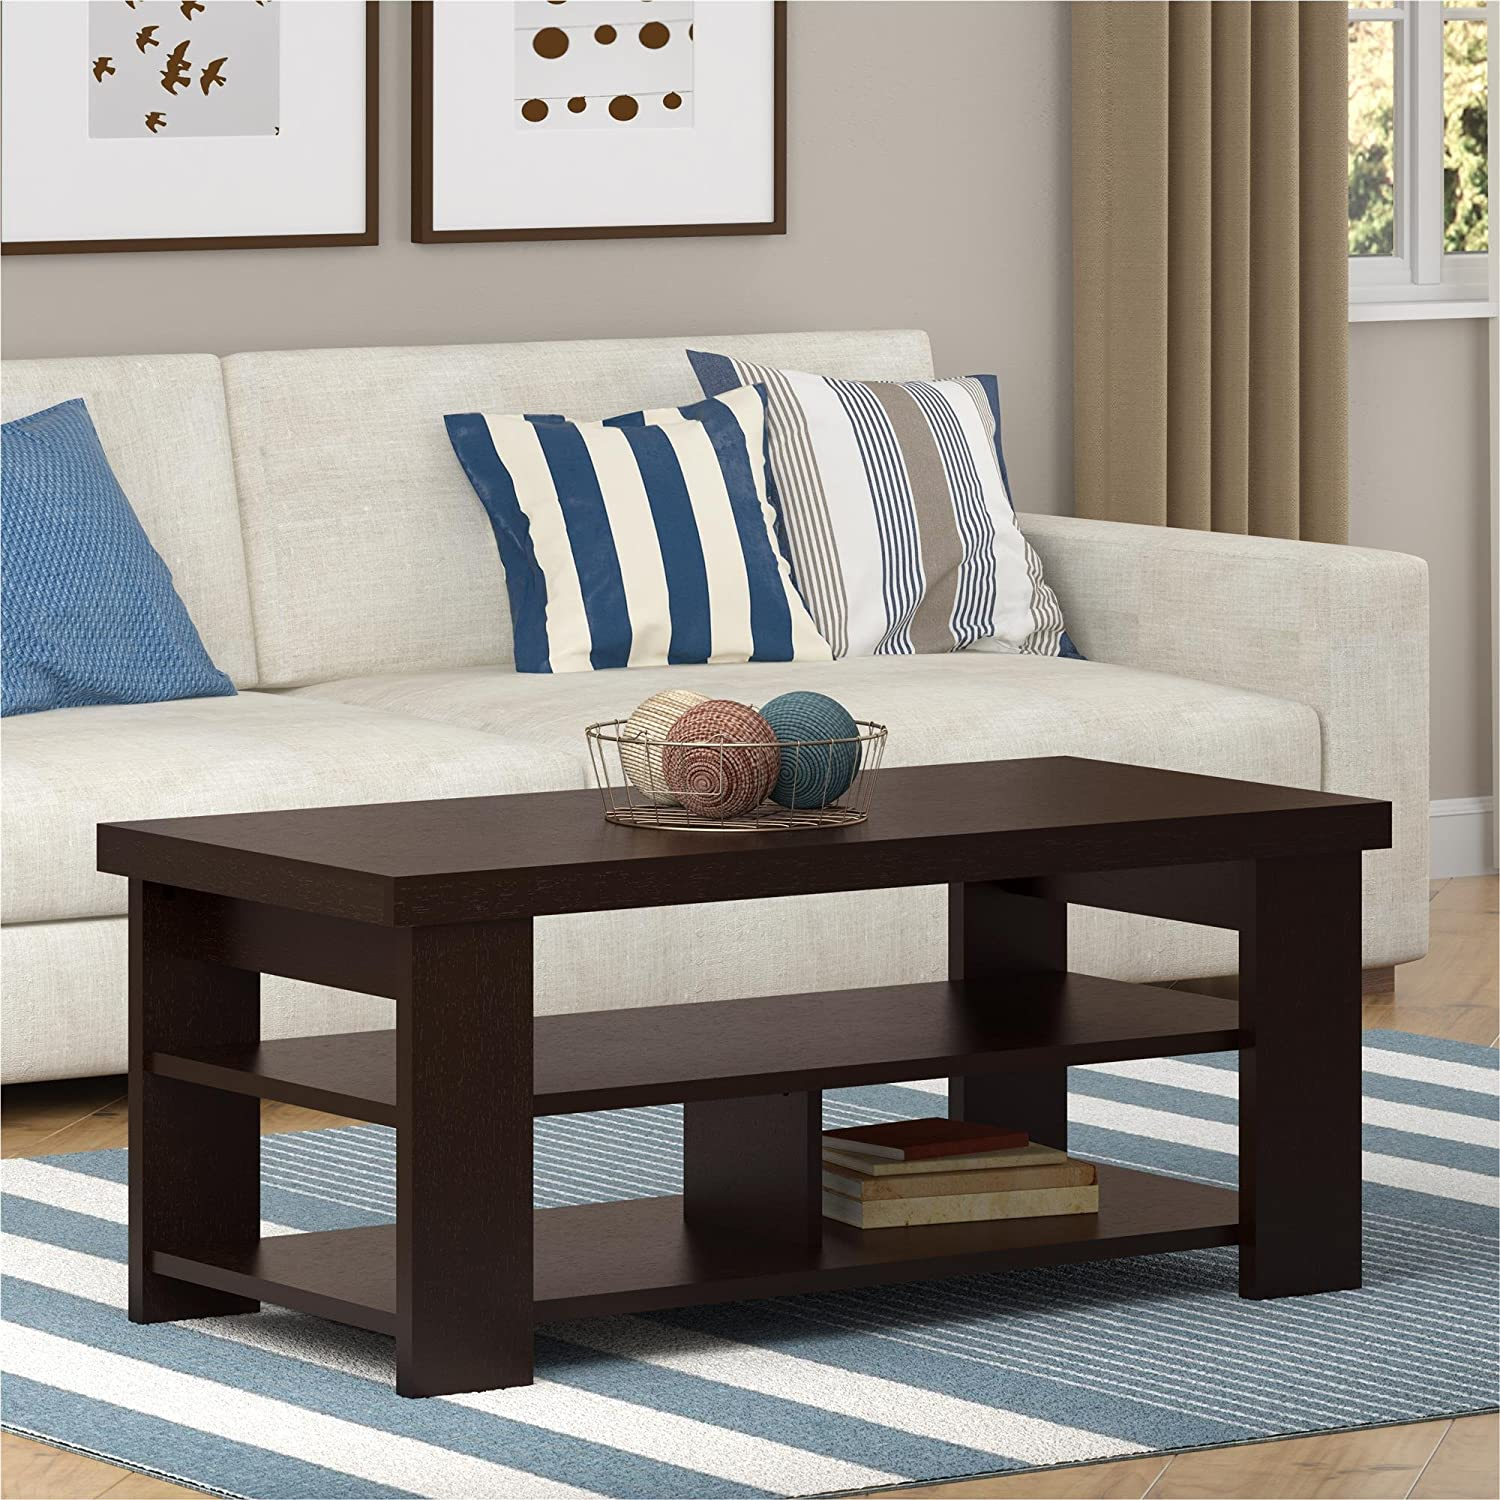 contemporary living room tables. Amazon com  Ameriwood Home Jensen Coffee Table Espresso Kitchen Dining